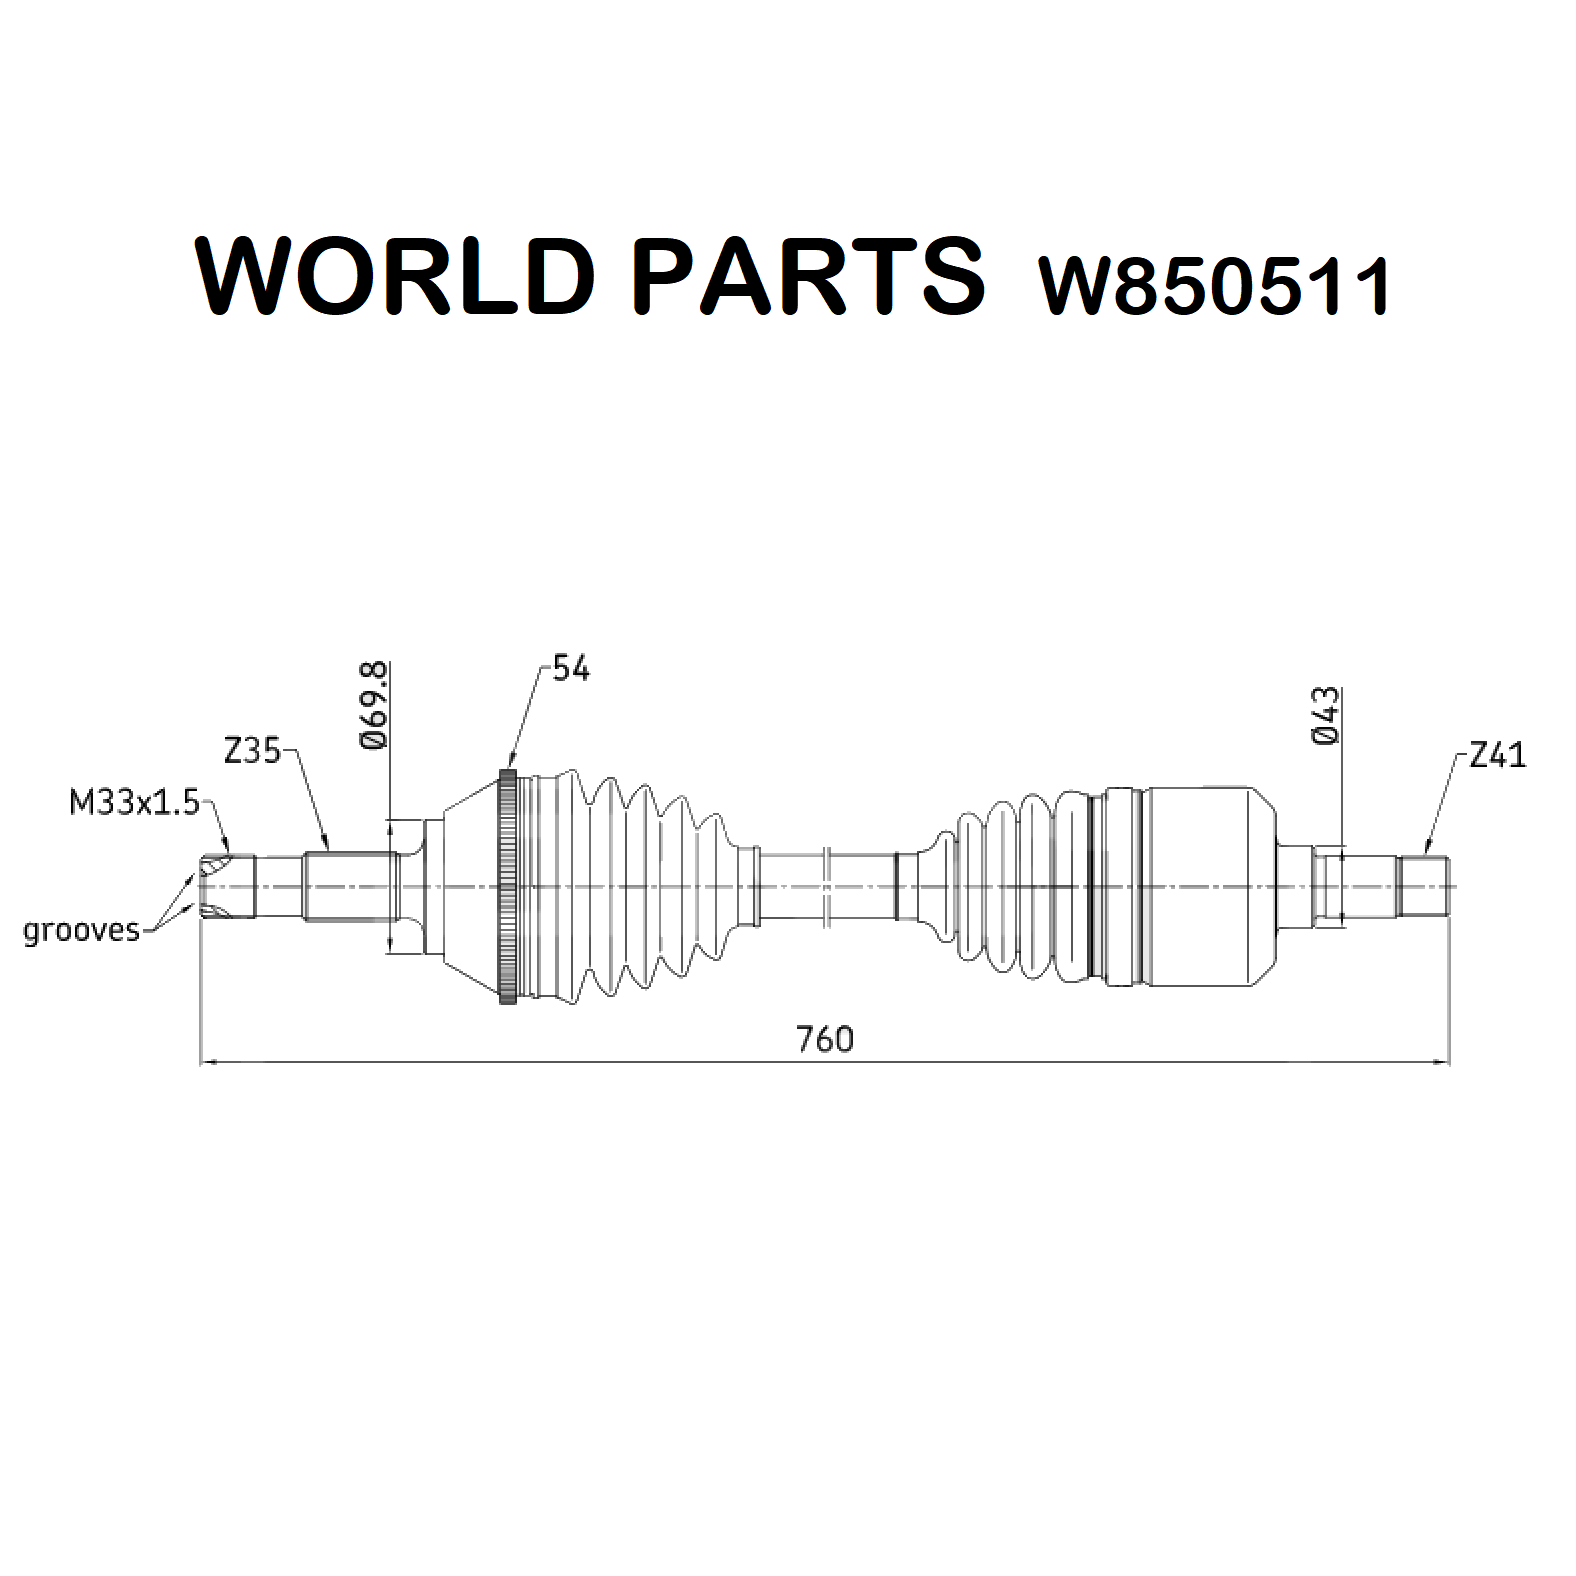 FRONT LEFT HALF-AXLES FIAT DUCATO WORLD PARTS FOR 1478551080